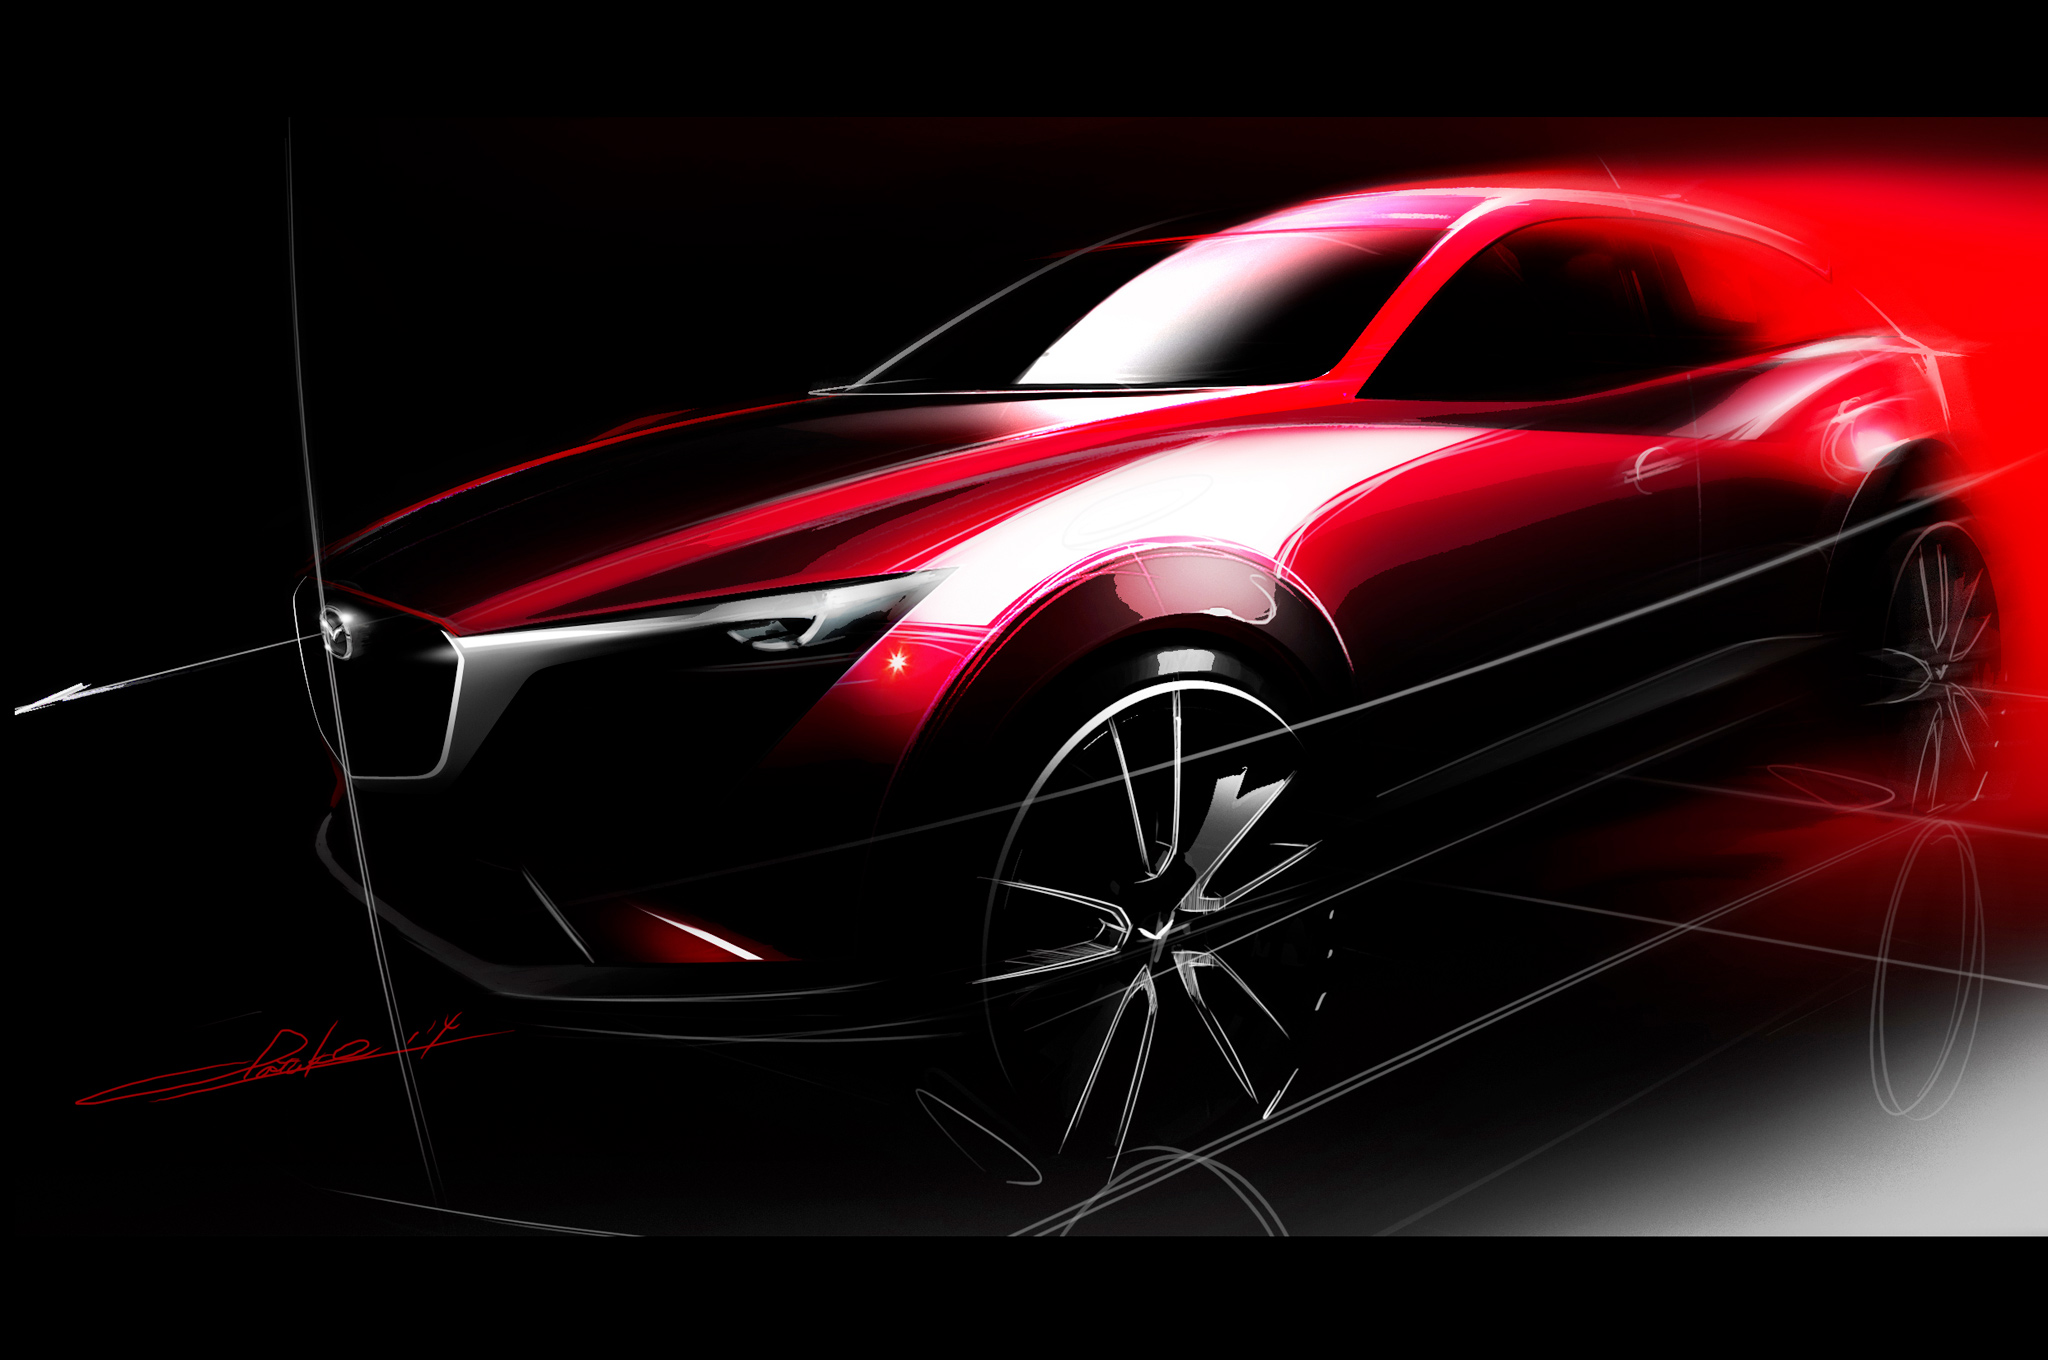 Mazda CX-3 Subcompact CUV Confirmed for Los Angeles